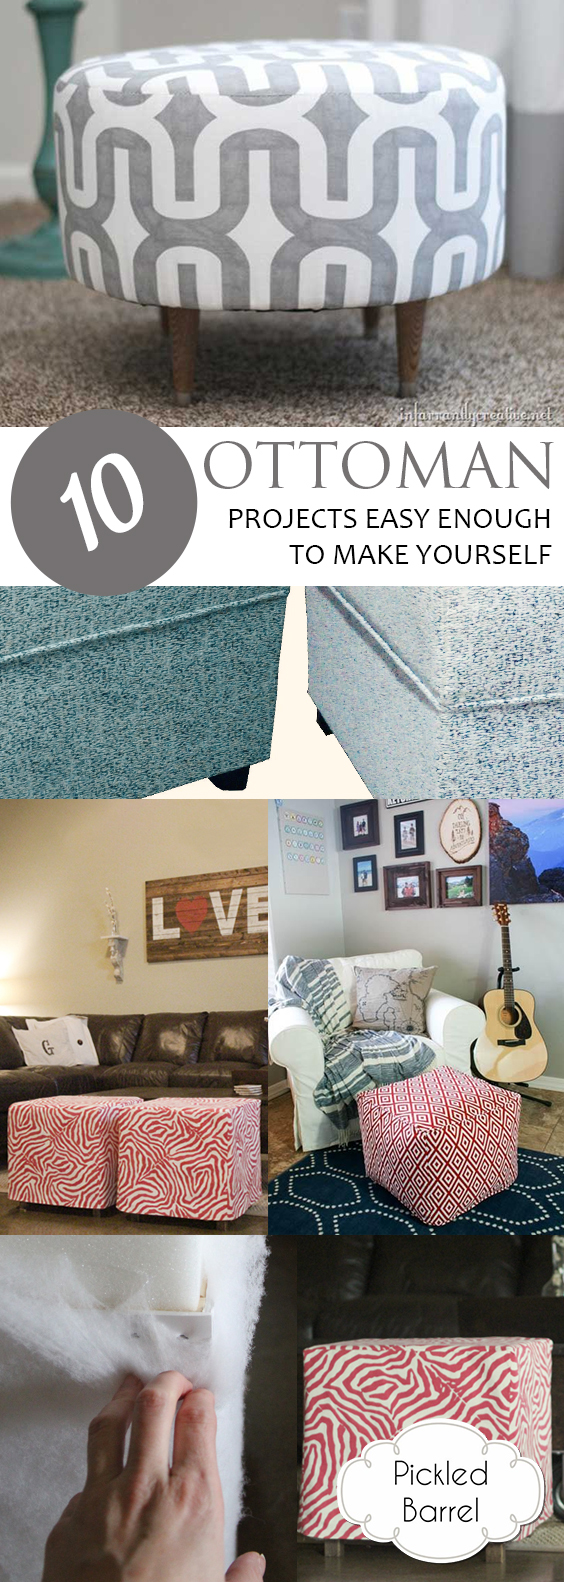 10 Ottoman Projects Easy Enough to Make Yourself| Ottoman DIY, DIY Ottoman, Ottoman Decor, DIY Ottoman Decor, Easy Ottoman, How to Make Your Own Ottoman, Ottoman Decor, Home Decor, DIY Home Decor, DIY Home, DIY Home Decor Projects, Popular Pin